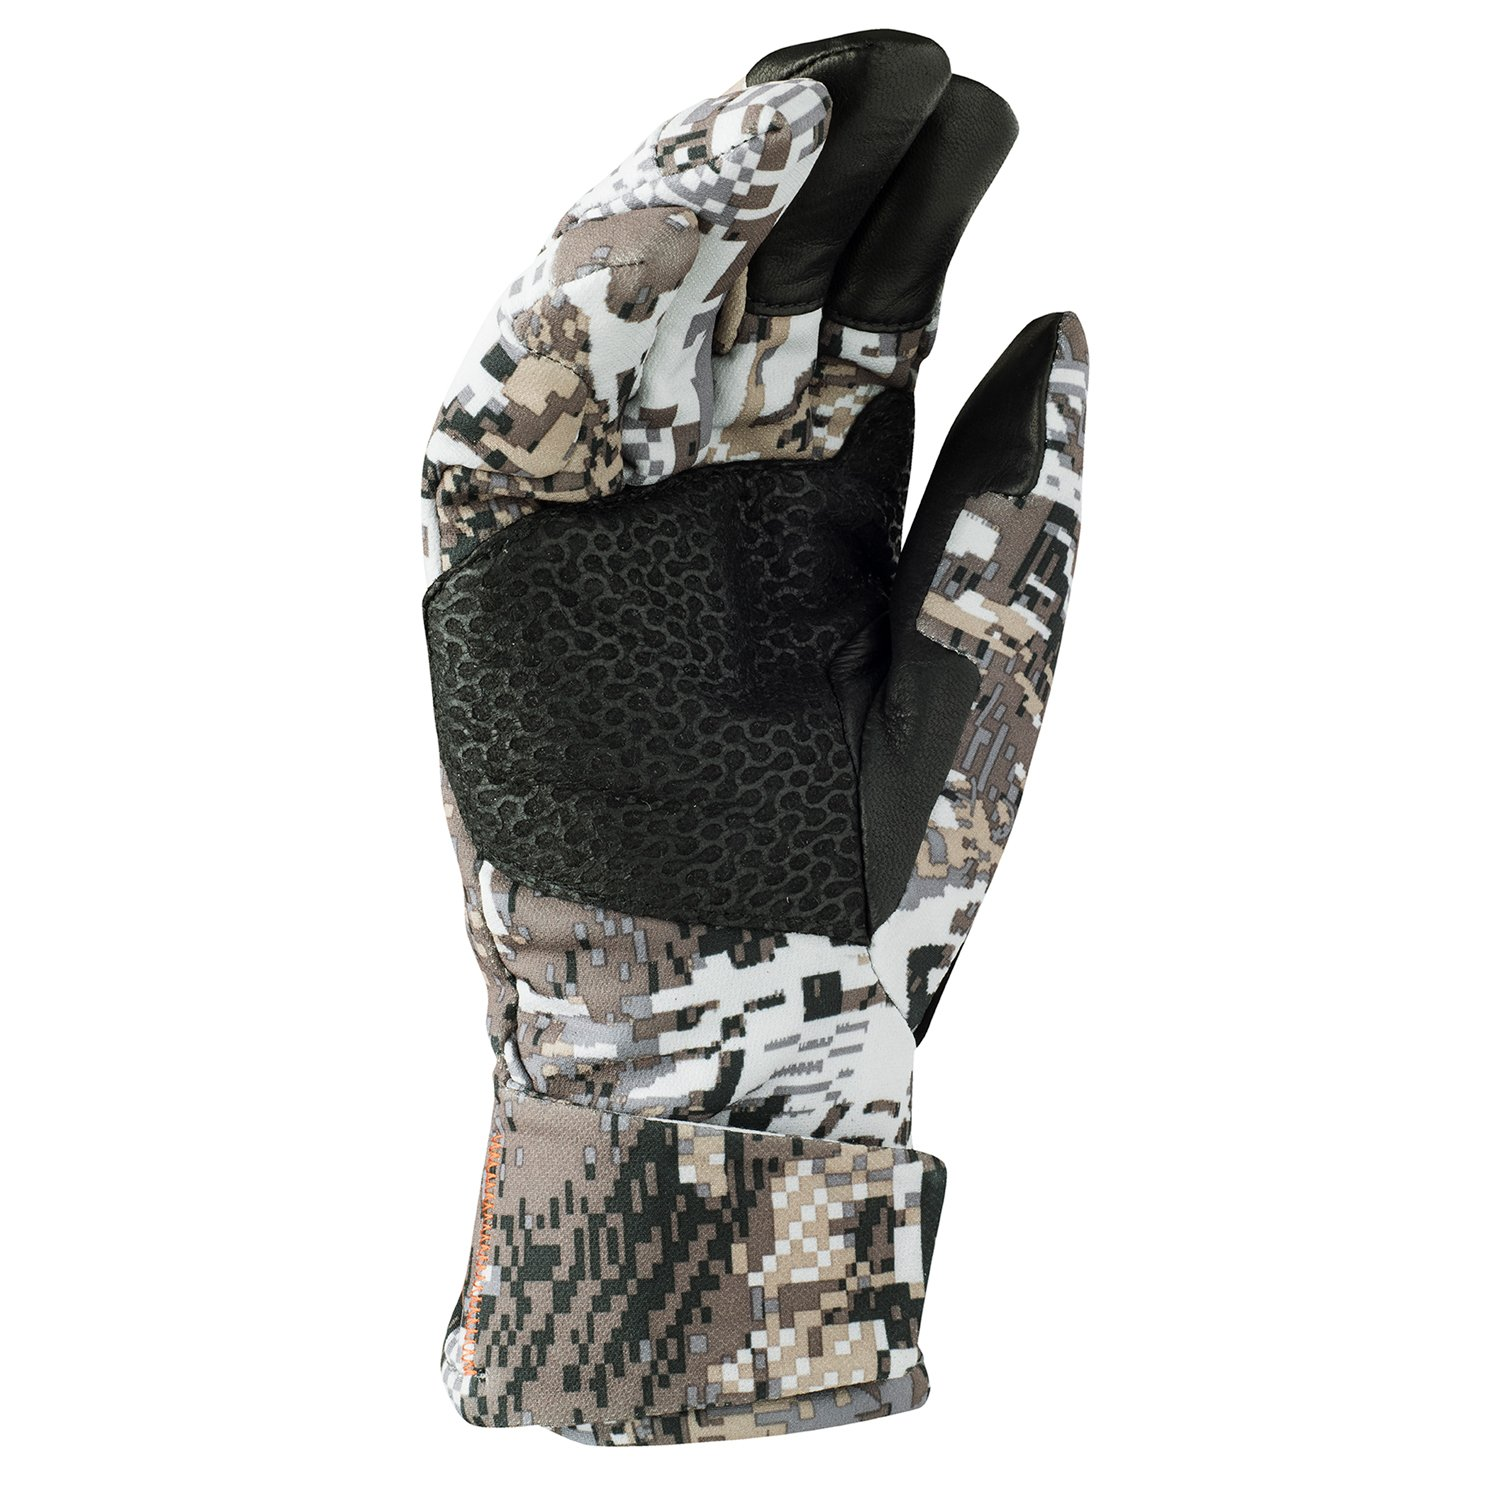 SITKA Gear Womens Downpour GTX Glove Optifade Elevated II Large by SITKA (Image #3)